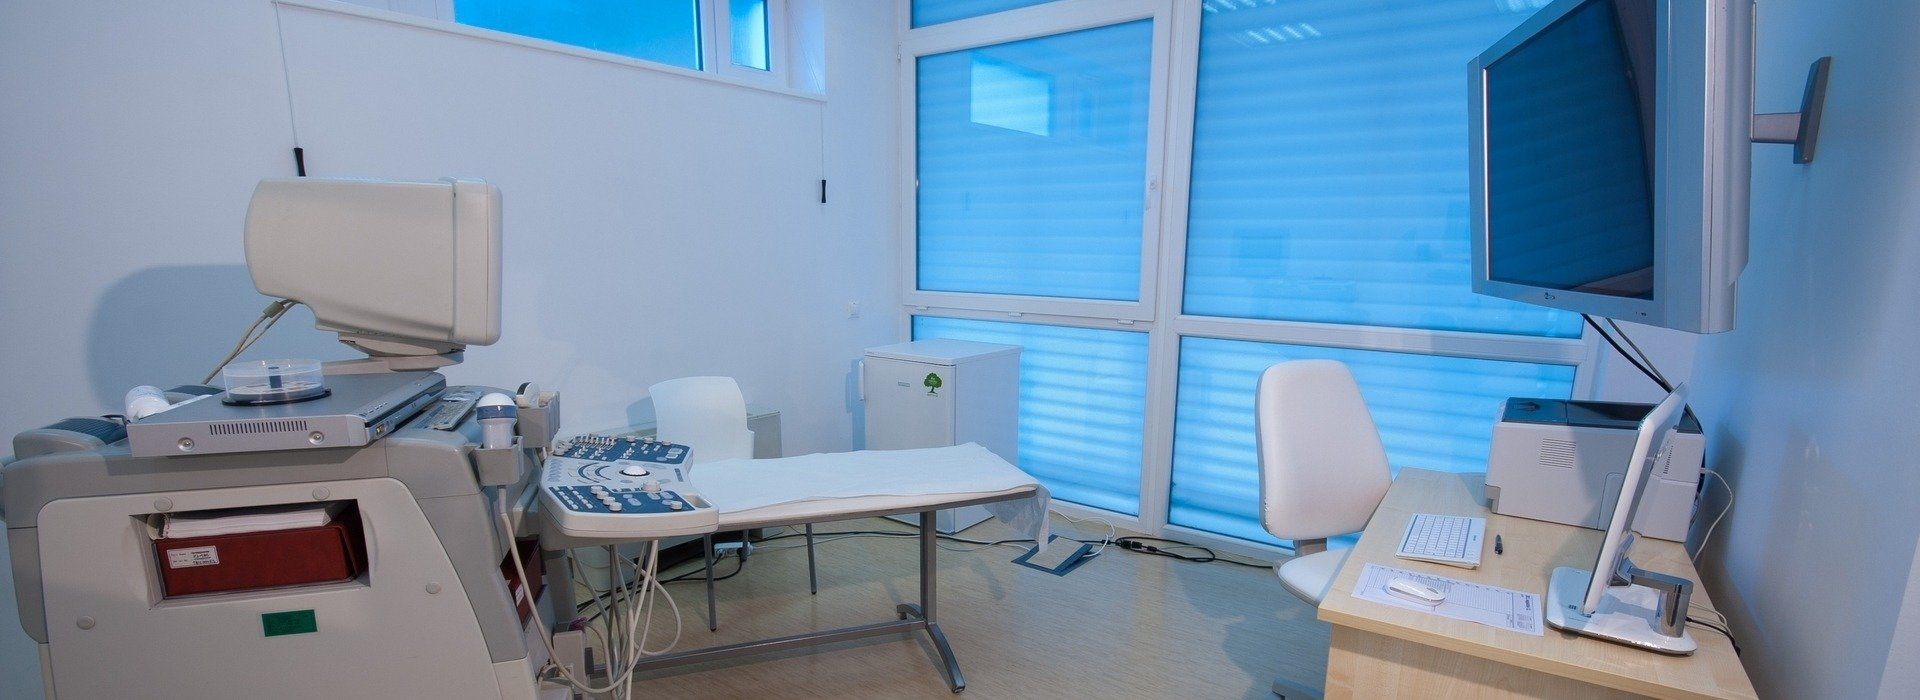 Arteriosclerosis diagnostics in Budapest – Private clinics in Budapest